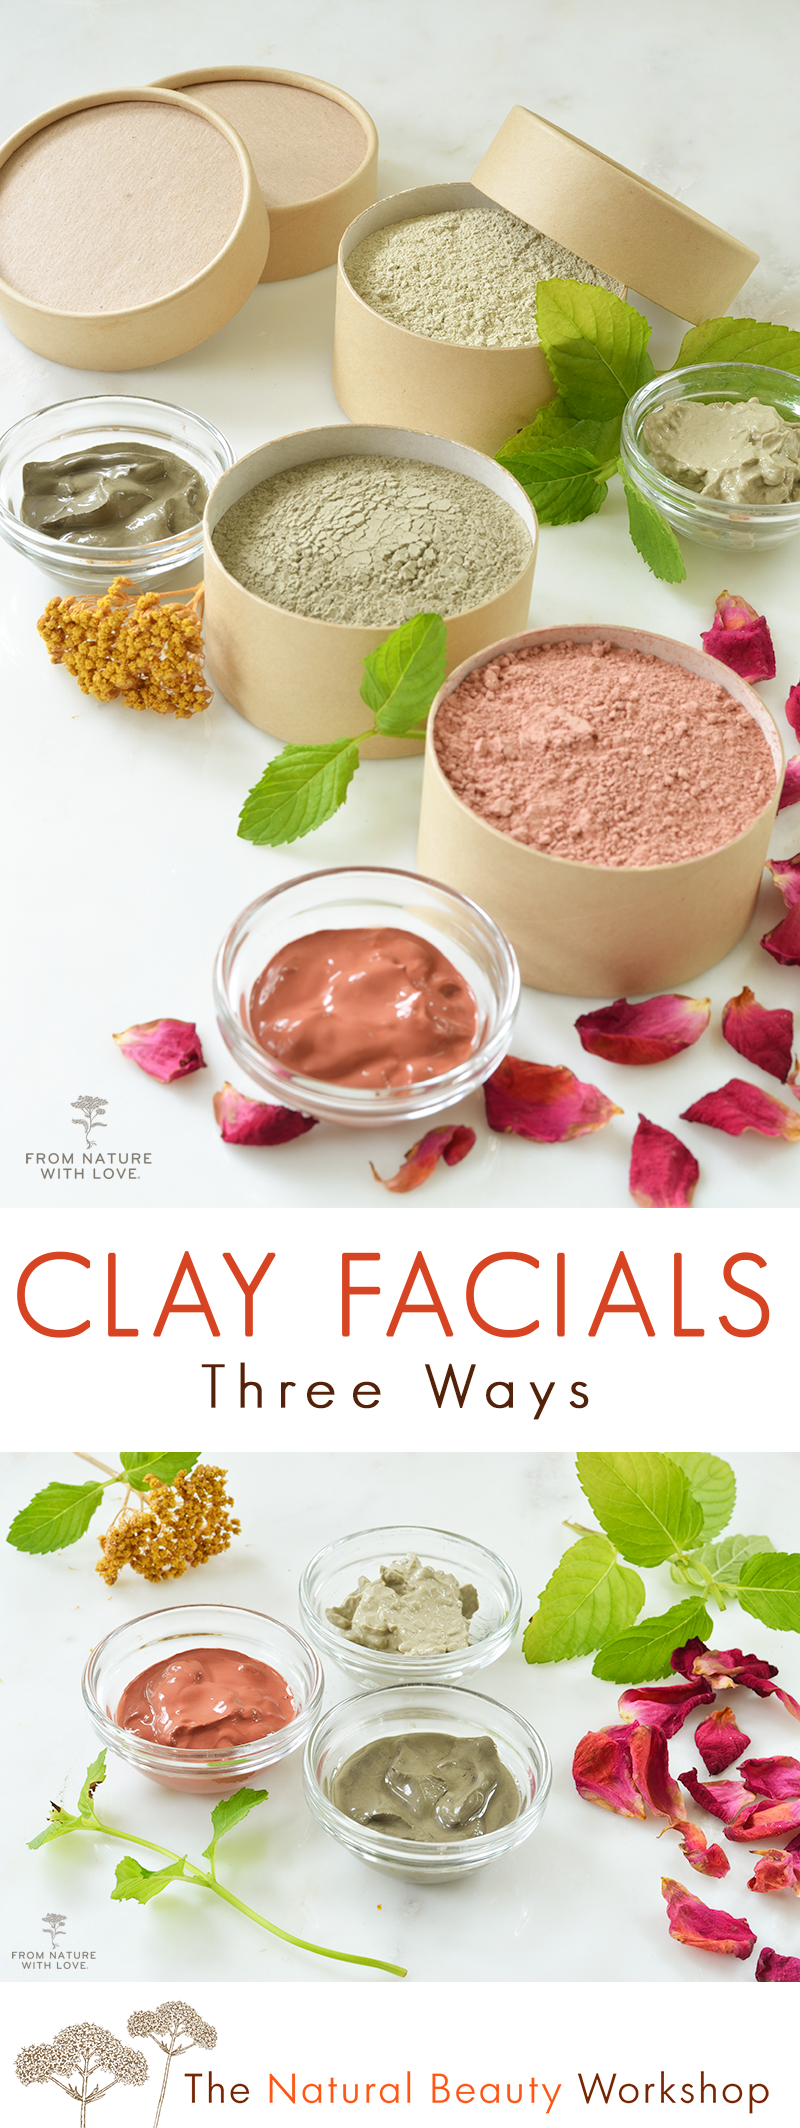 Make Your Own Clay Facial Masks - Three Easy Recipes to Get Started #diybeauty